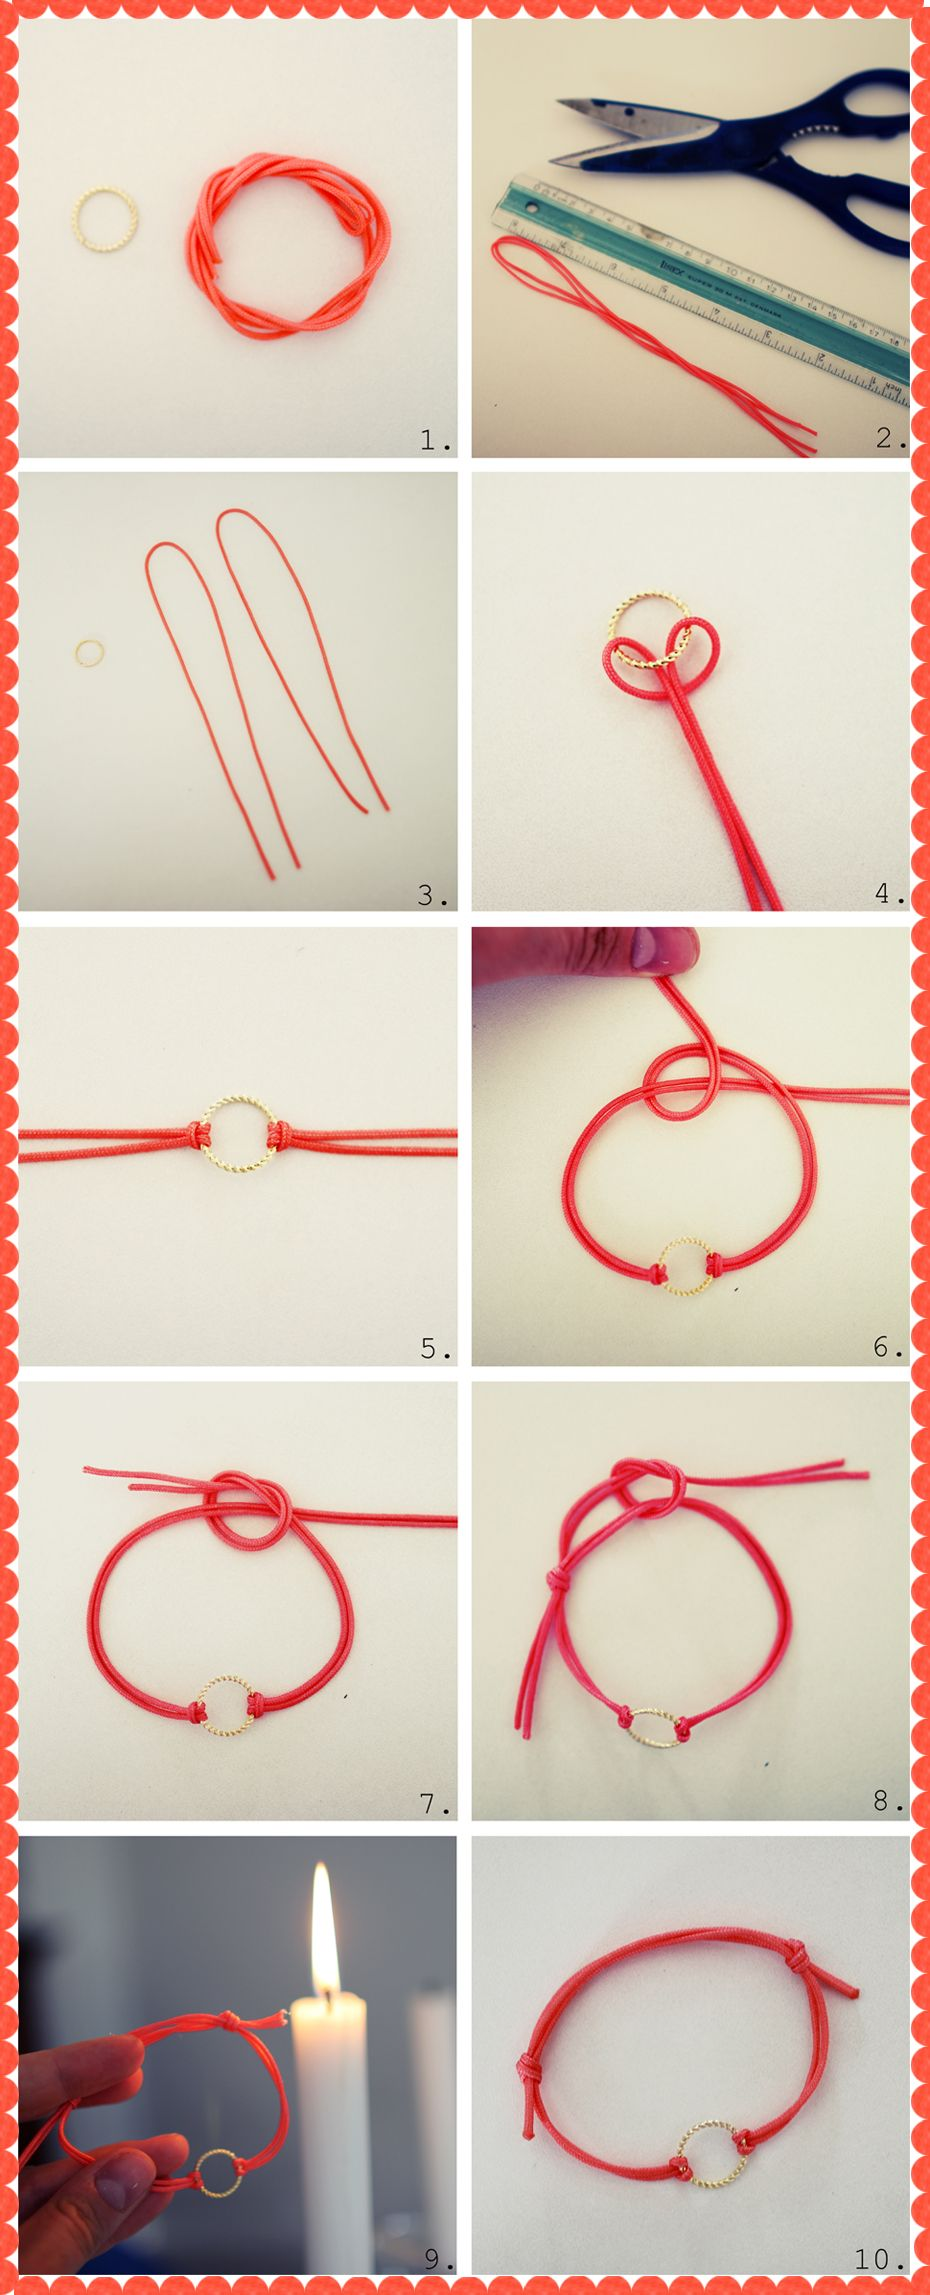 One of the best tutorials for the sliding knot closure diy diy bracelet diy diy crafts do it yourself diy jewelry diy tips diy ideas diy bracelet easy diy craft jewelry craft bracelet easy crafts free jewelry d y i baditri Image collections